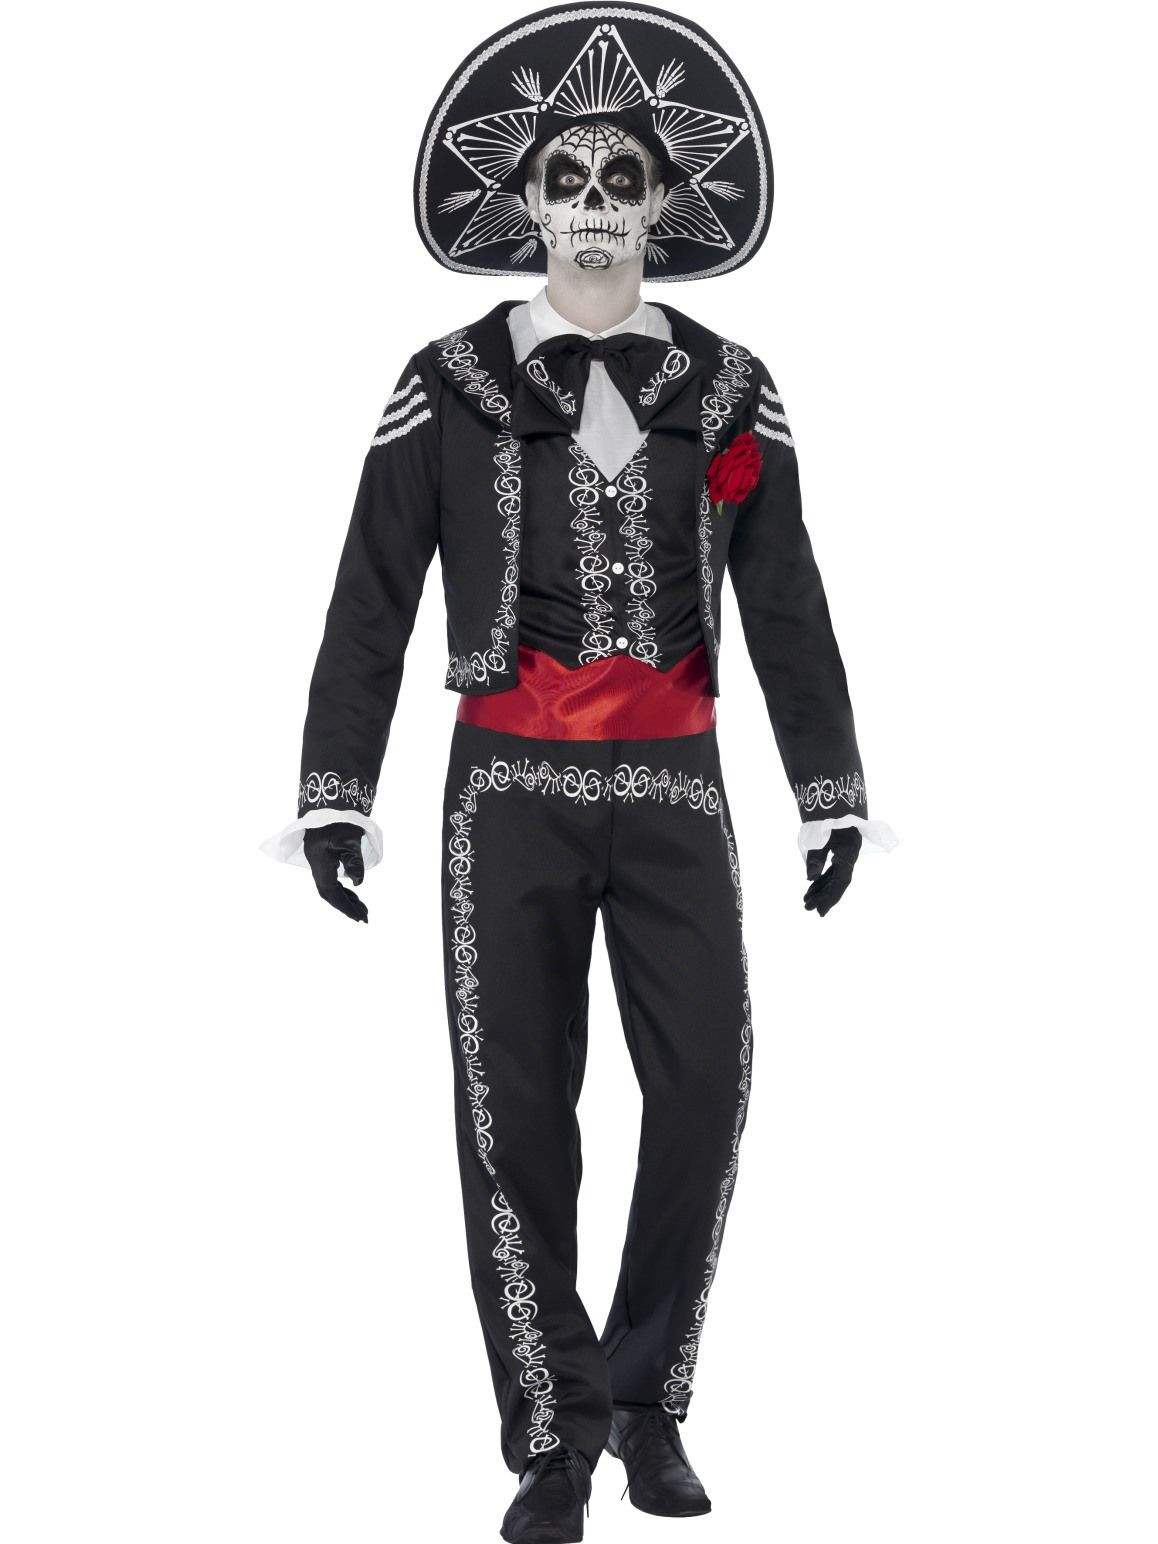 Day of the Dead Senor Bones Costume - Buy Online Only